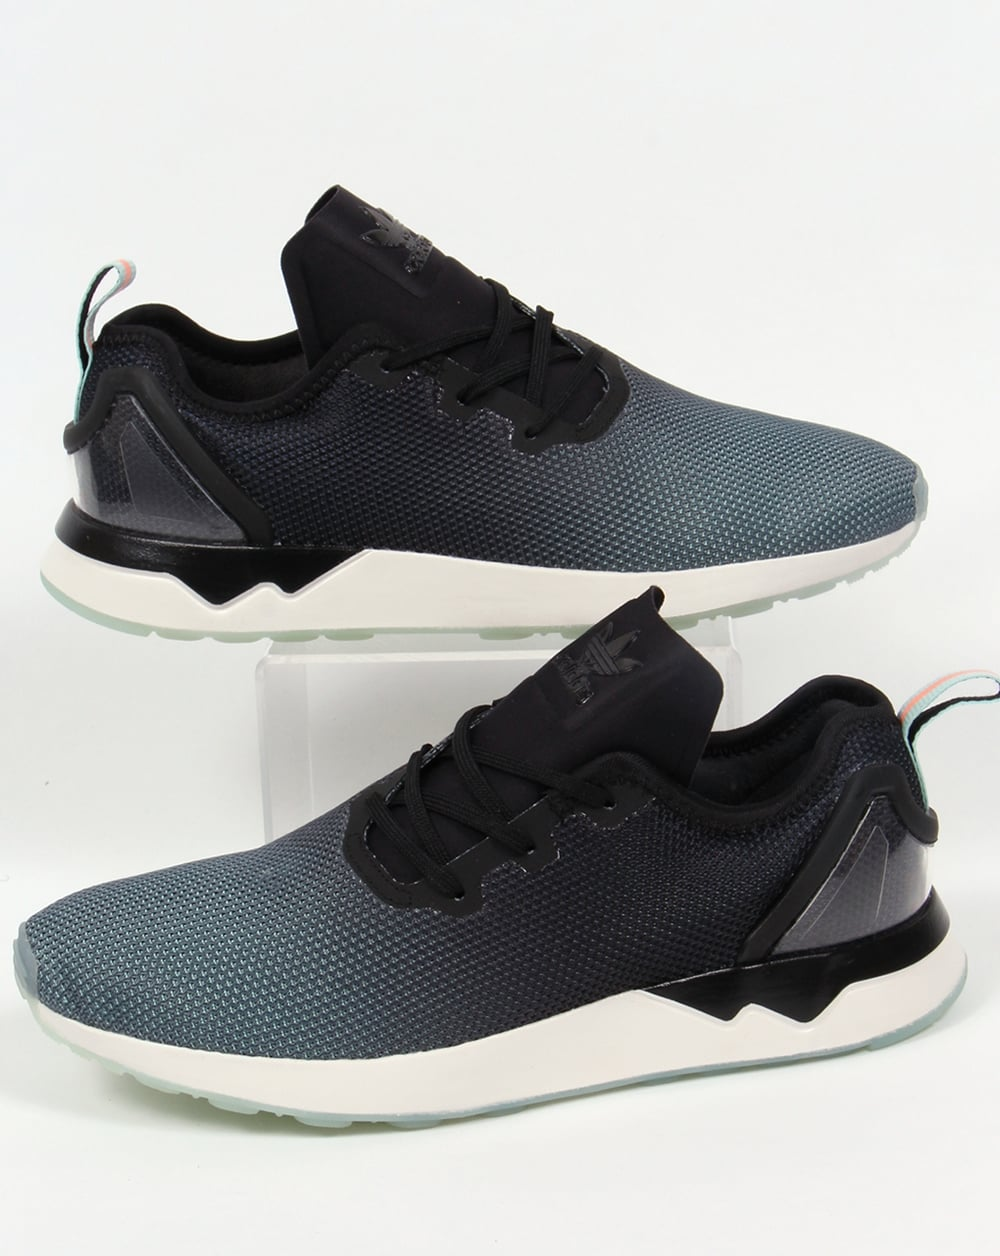 Adidas ZX Flux Racer Asym Trainers